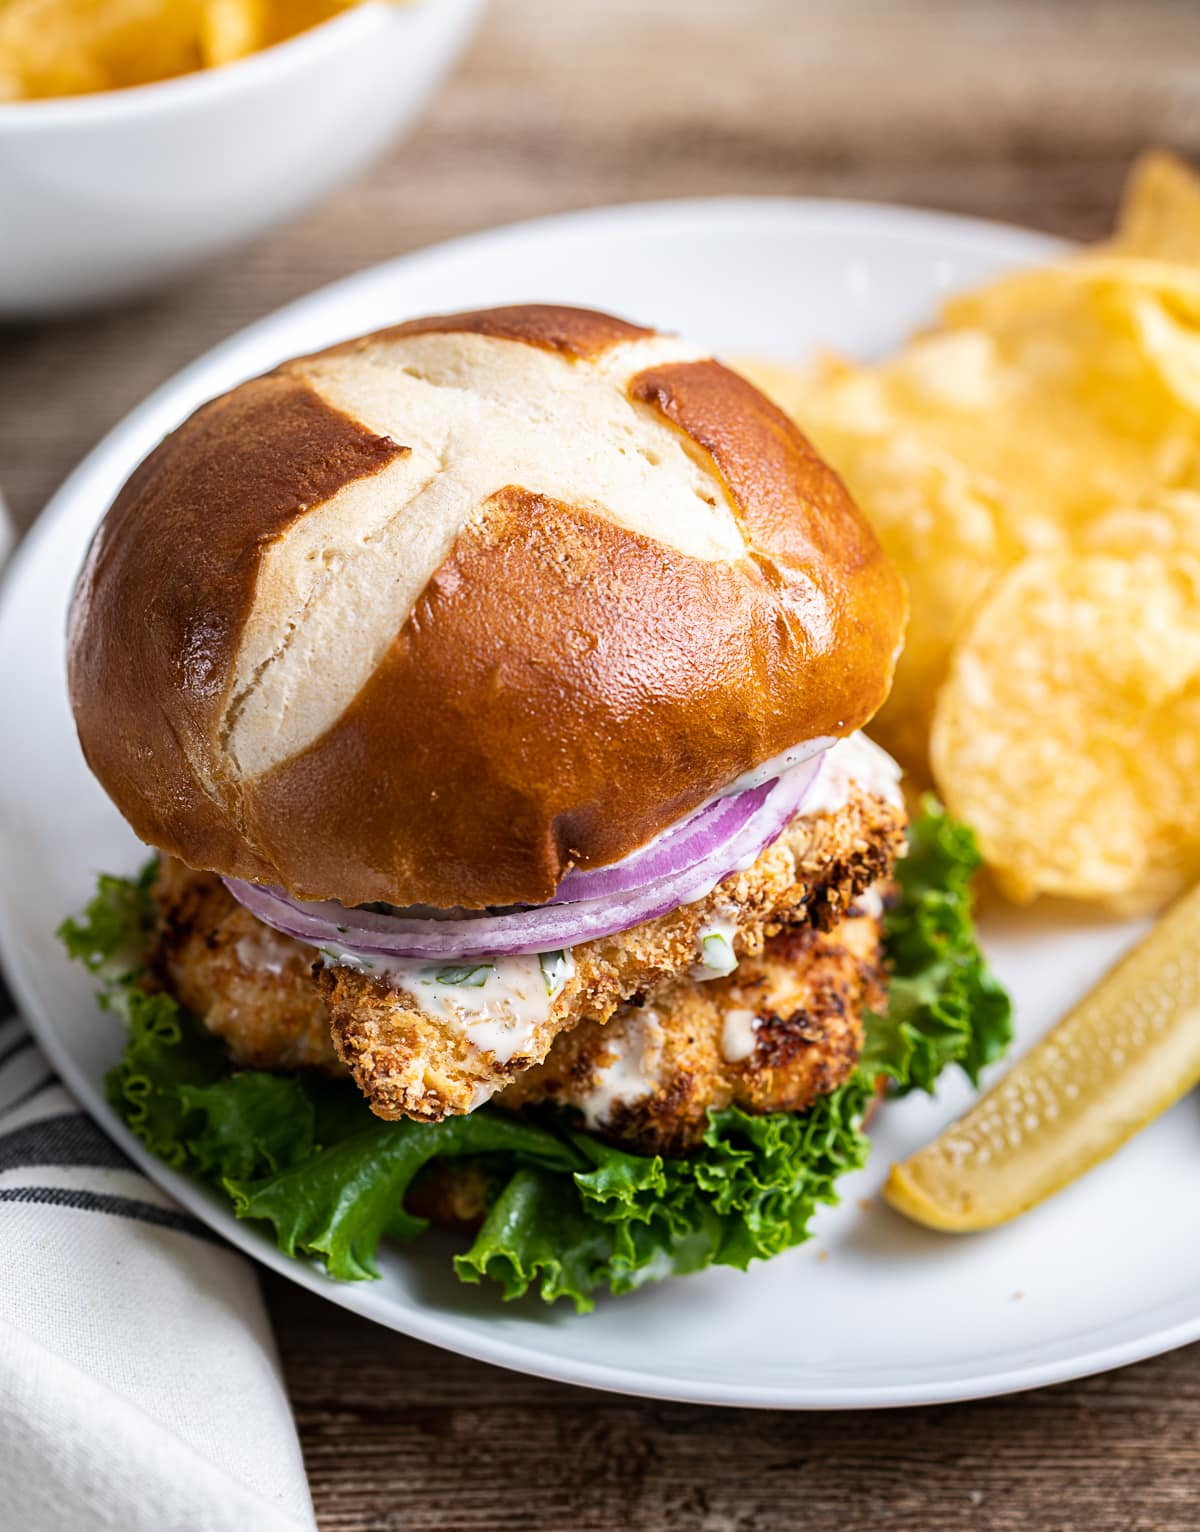 chicken schnitzel sandwich on a white plate with potato chips and pickle